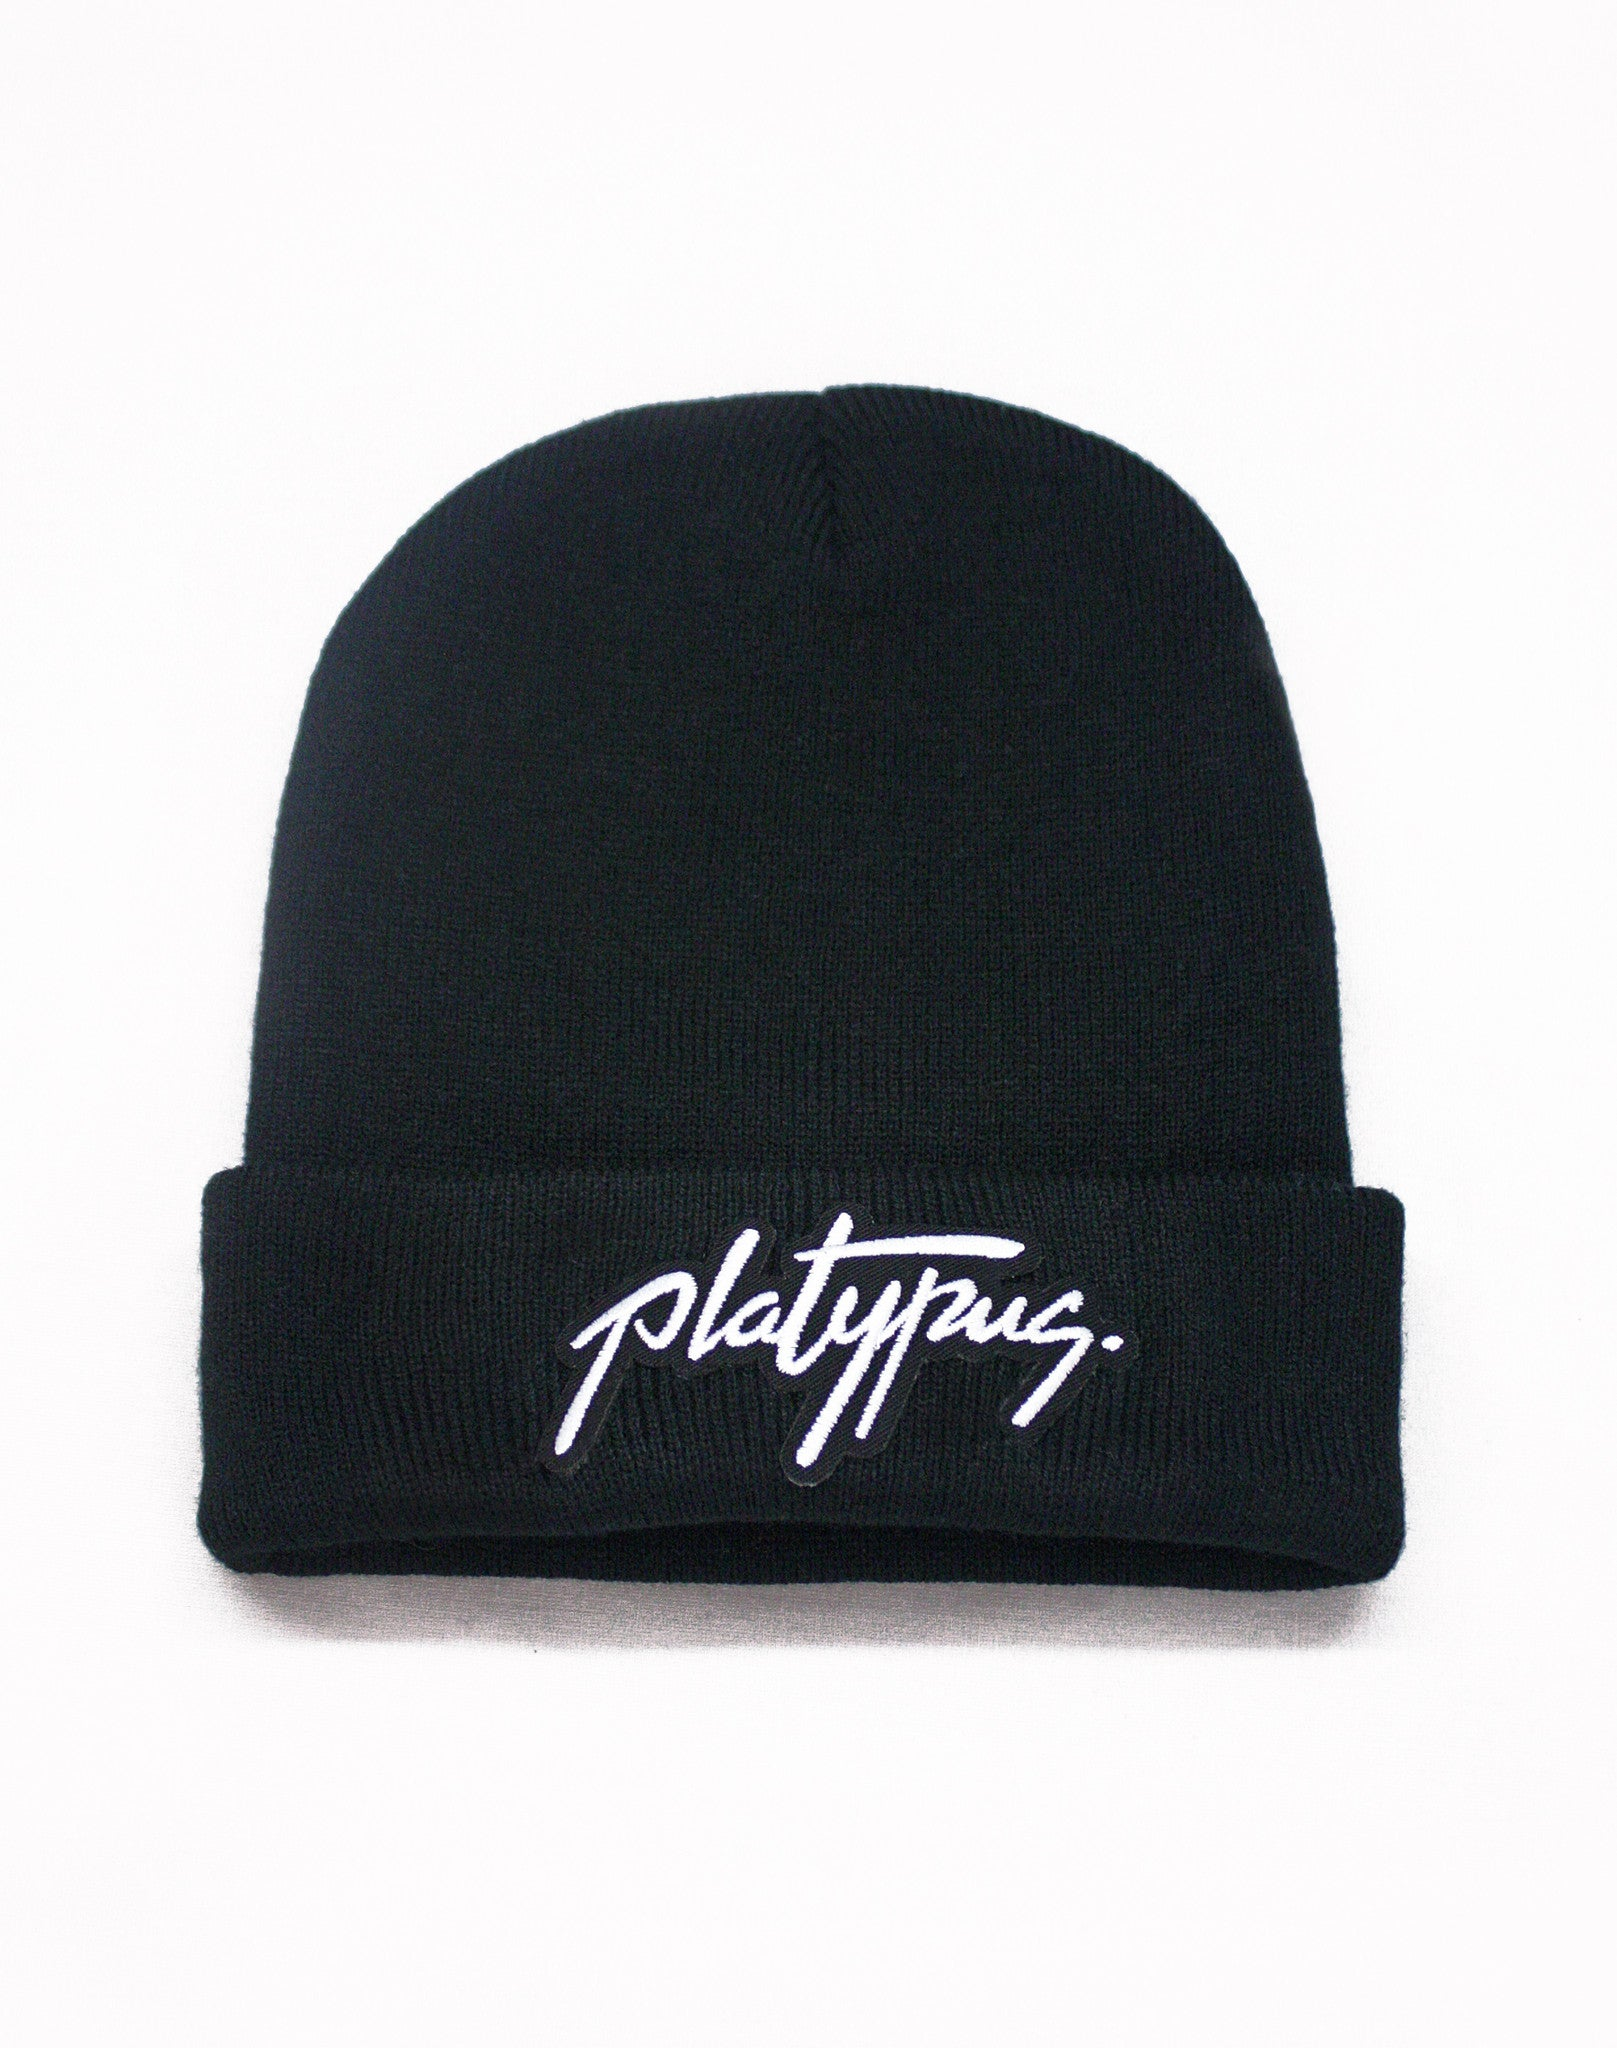 Platypus Independent Clothing Classic Signature Patch Black Beanie Hat